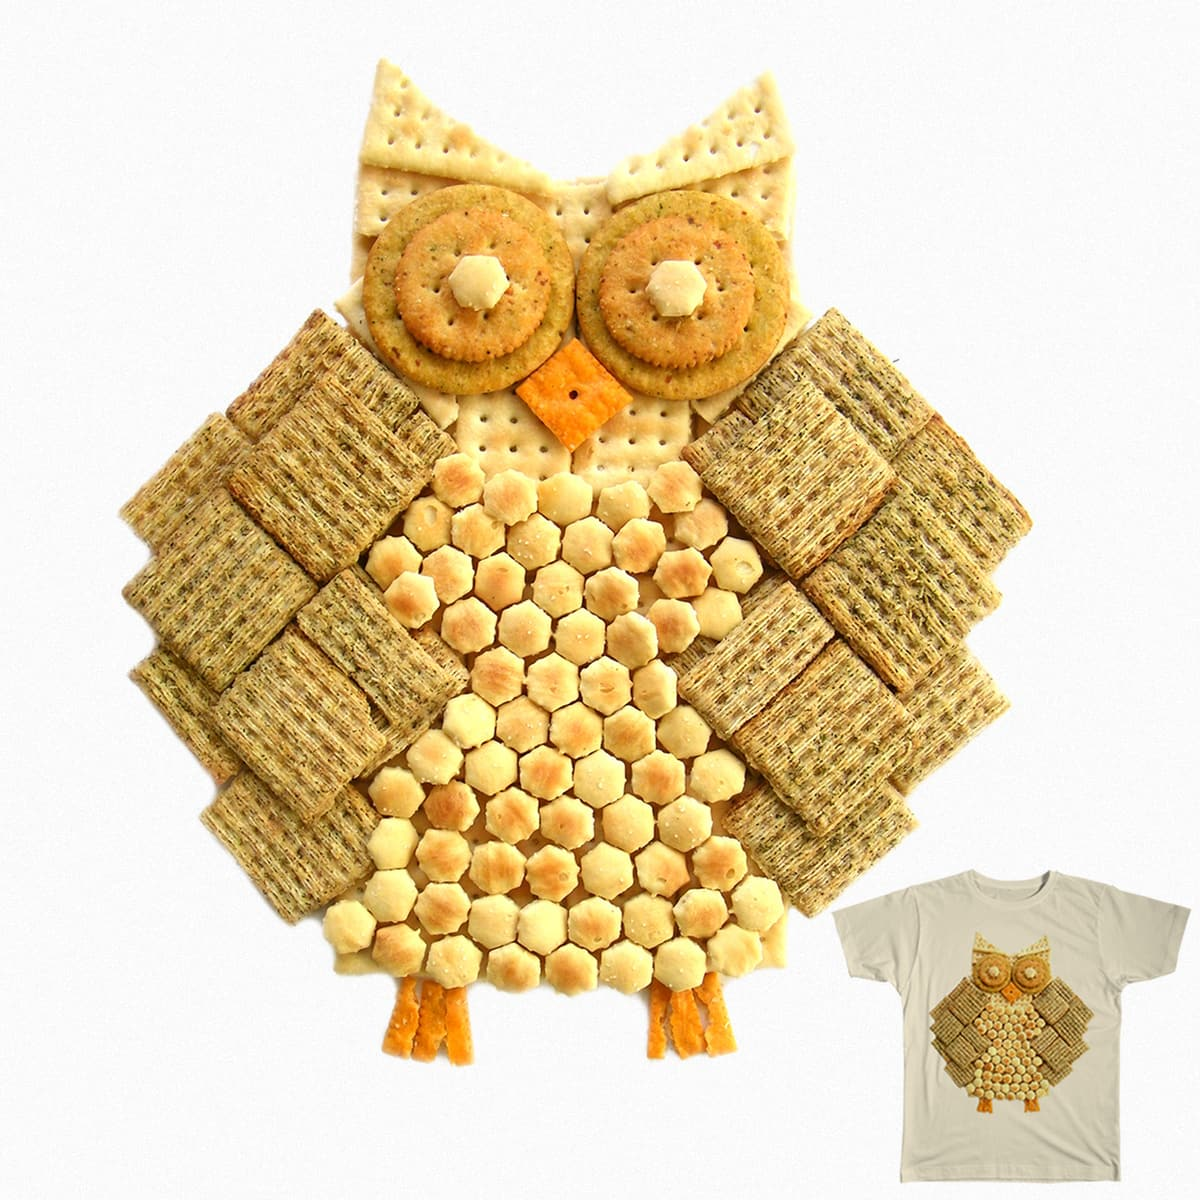 Wise Cracker by AnthonyMoore on Threadless